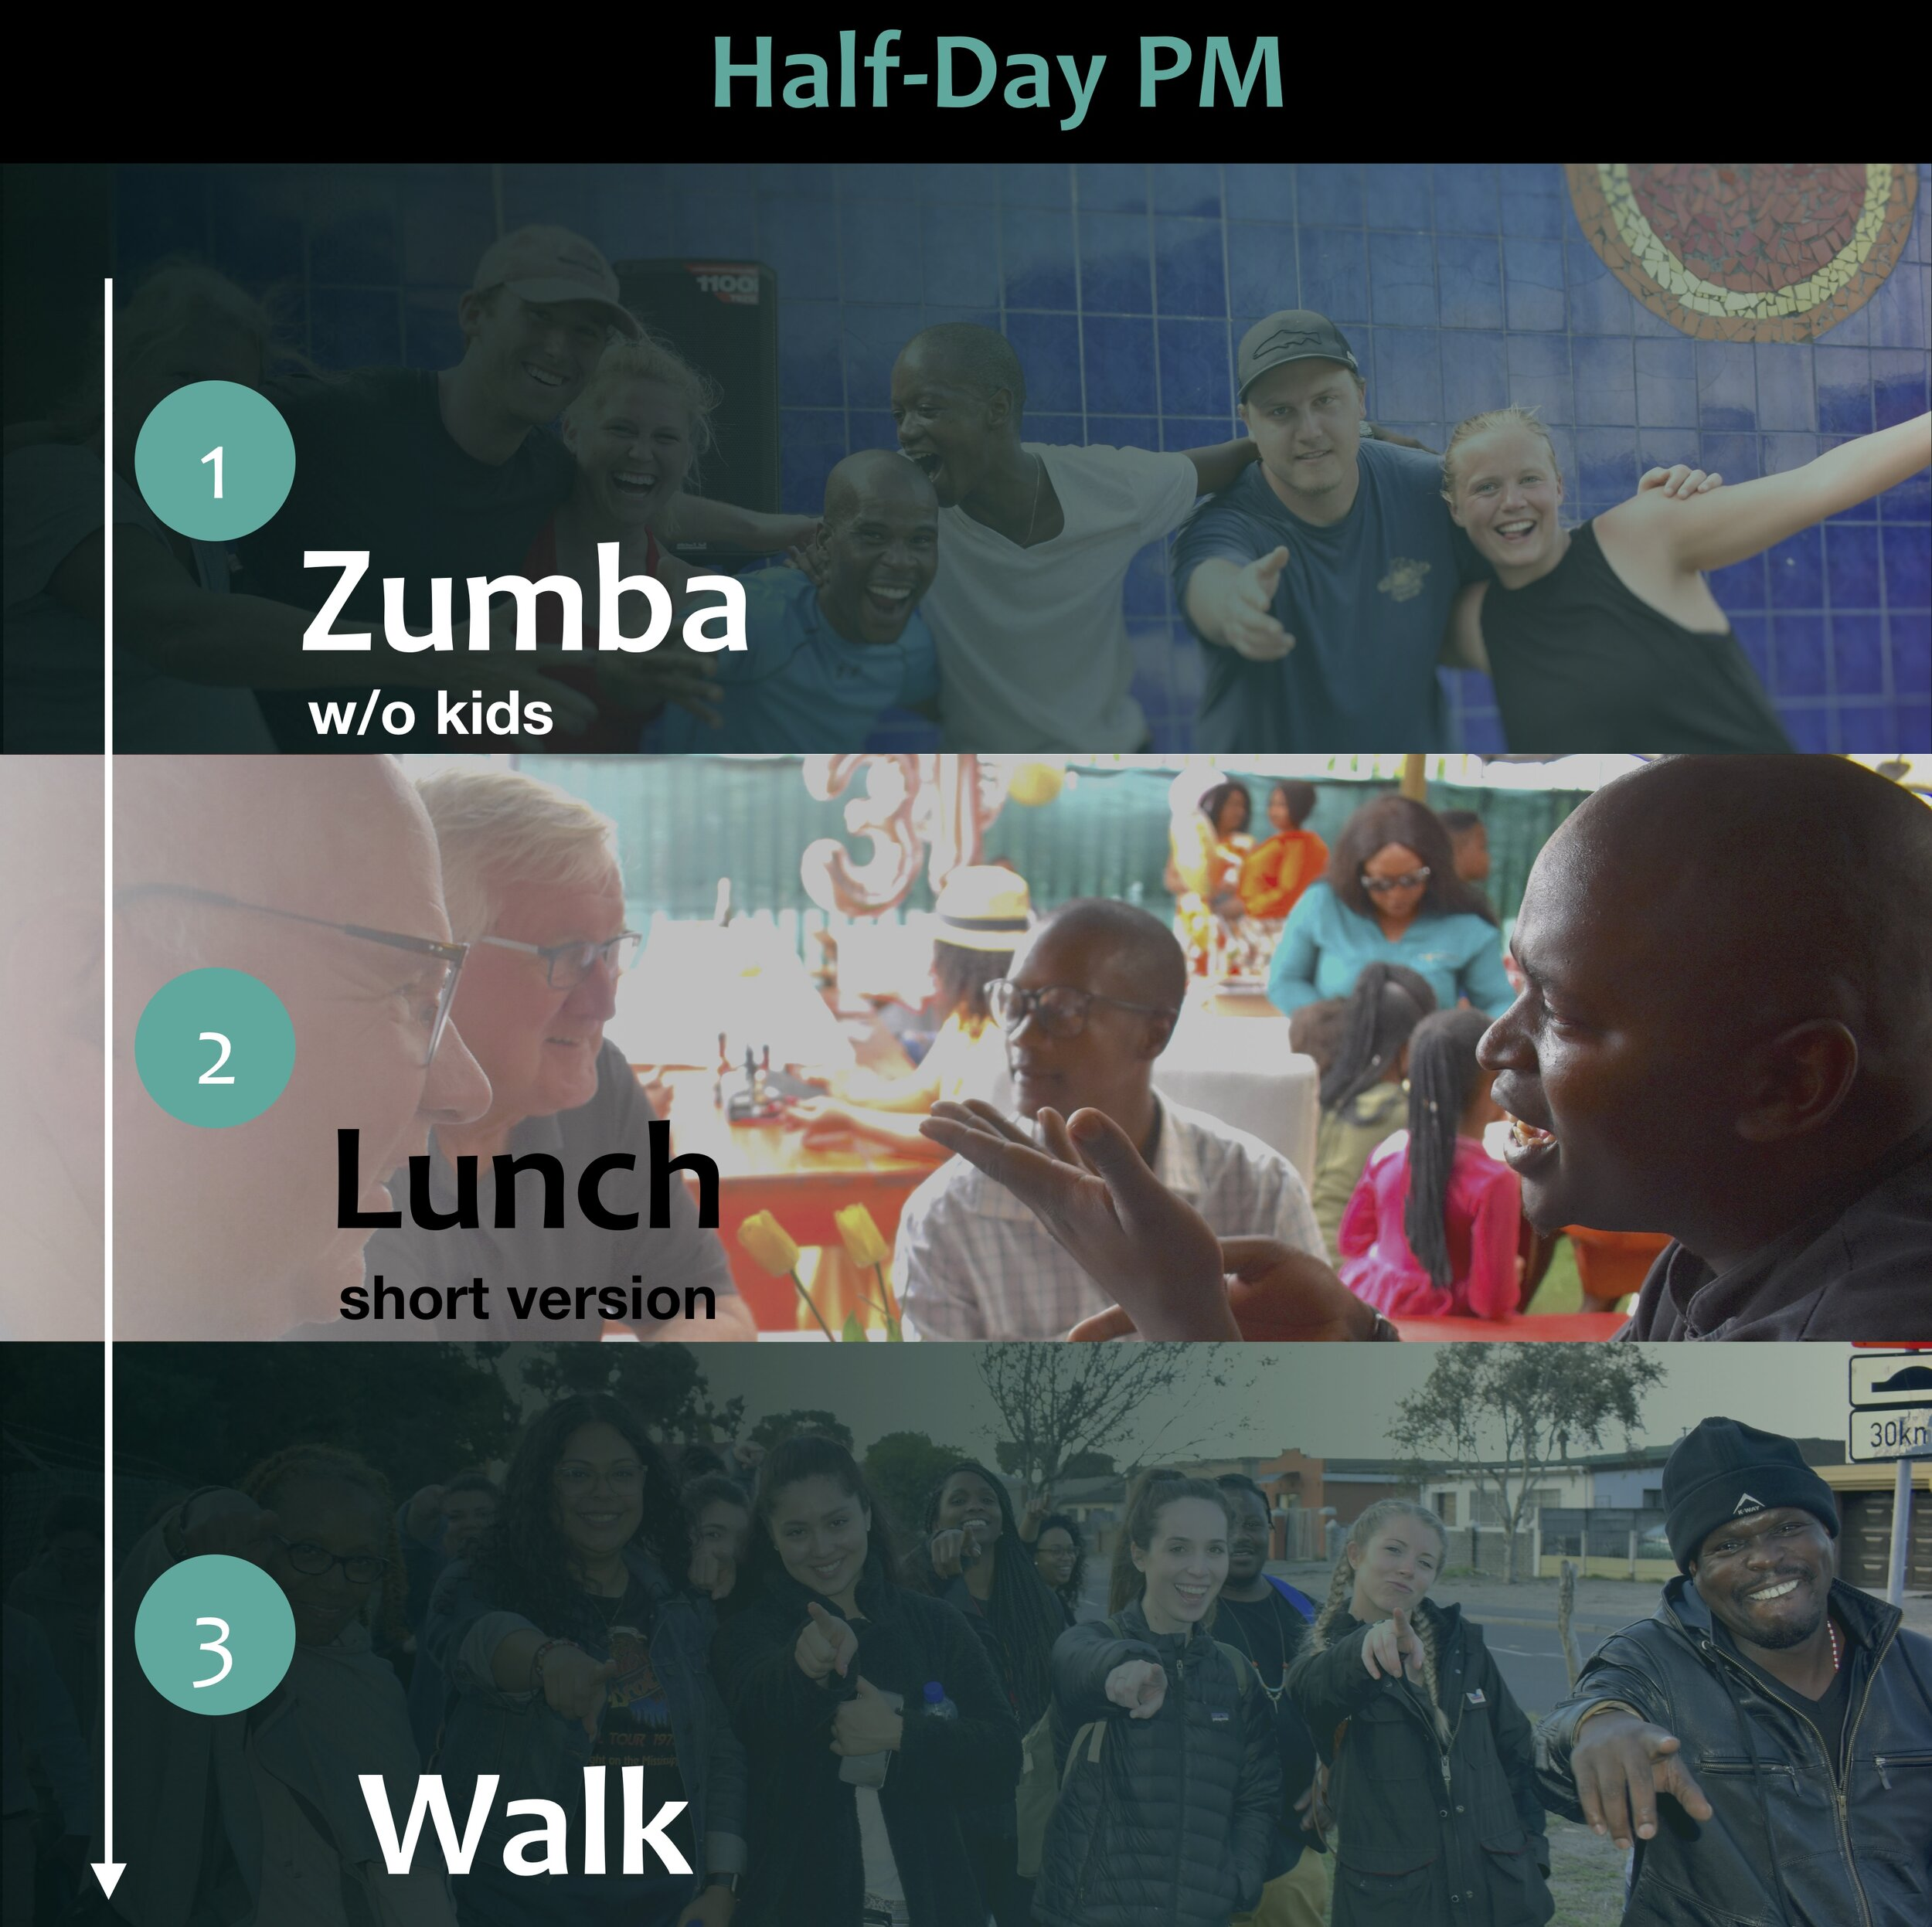 Half-Day PM - Zumba > Lunch > Walk - Blend the City Tour Summary Cover Pic (crop 2)